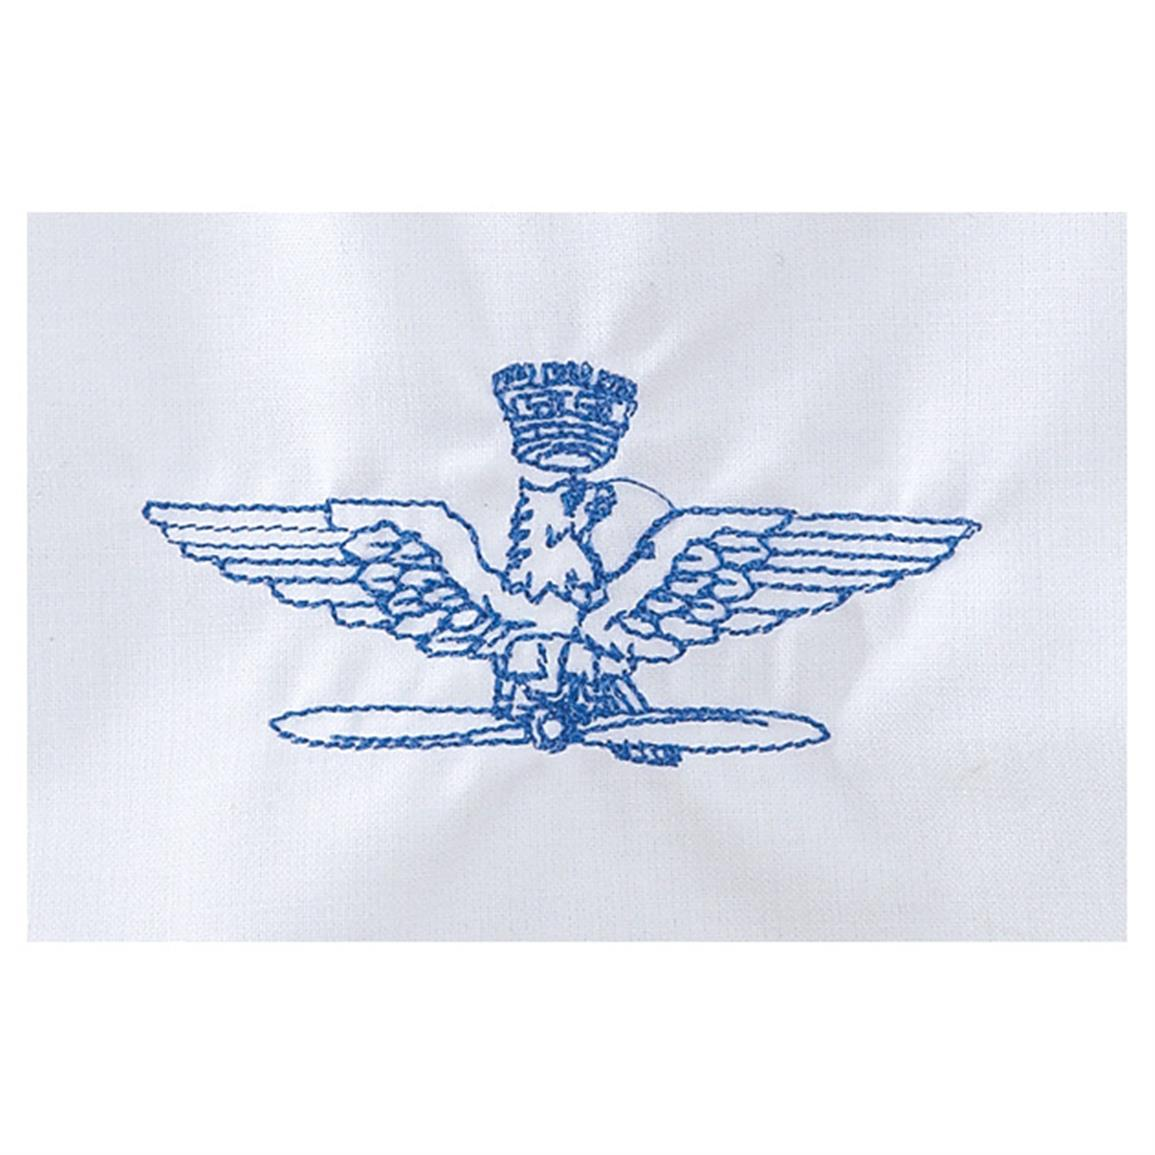 Flying high Italian Air Force insignia